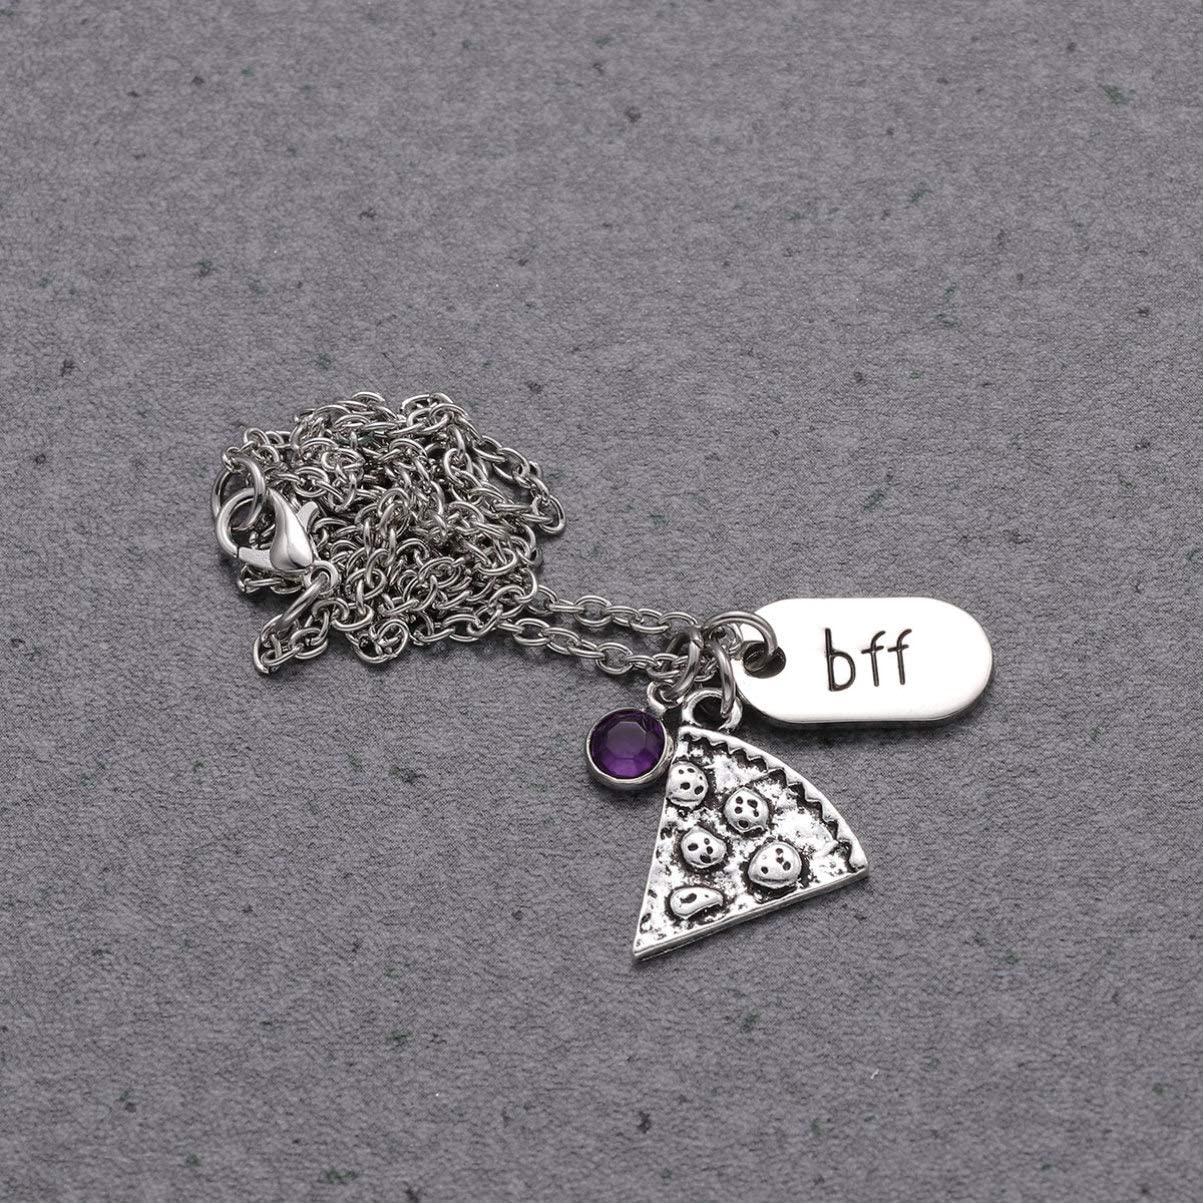 NUOBESTY 6pcs Pizza Pendant Necklace Diamond Best Friend Forever Bff Charm Friendship Necklace Bling Couple Pizza Slice Neck Chain For Unisex Friend Lover Gift